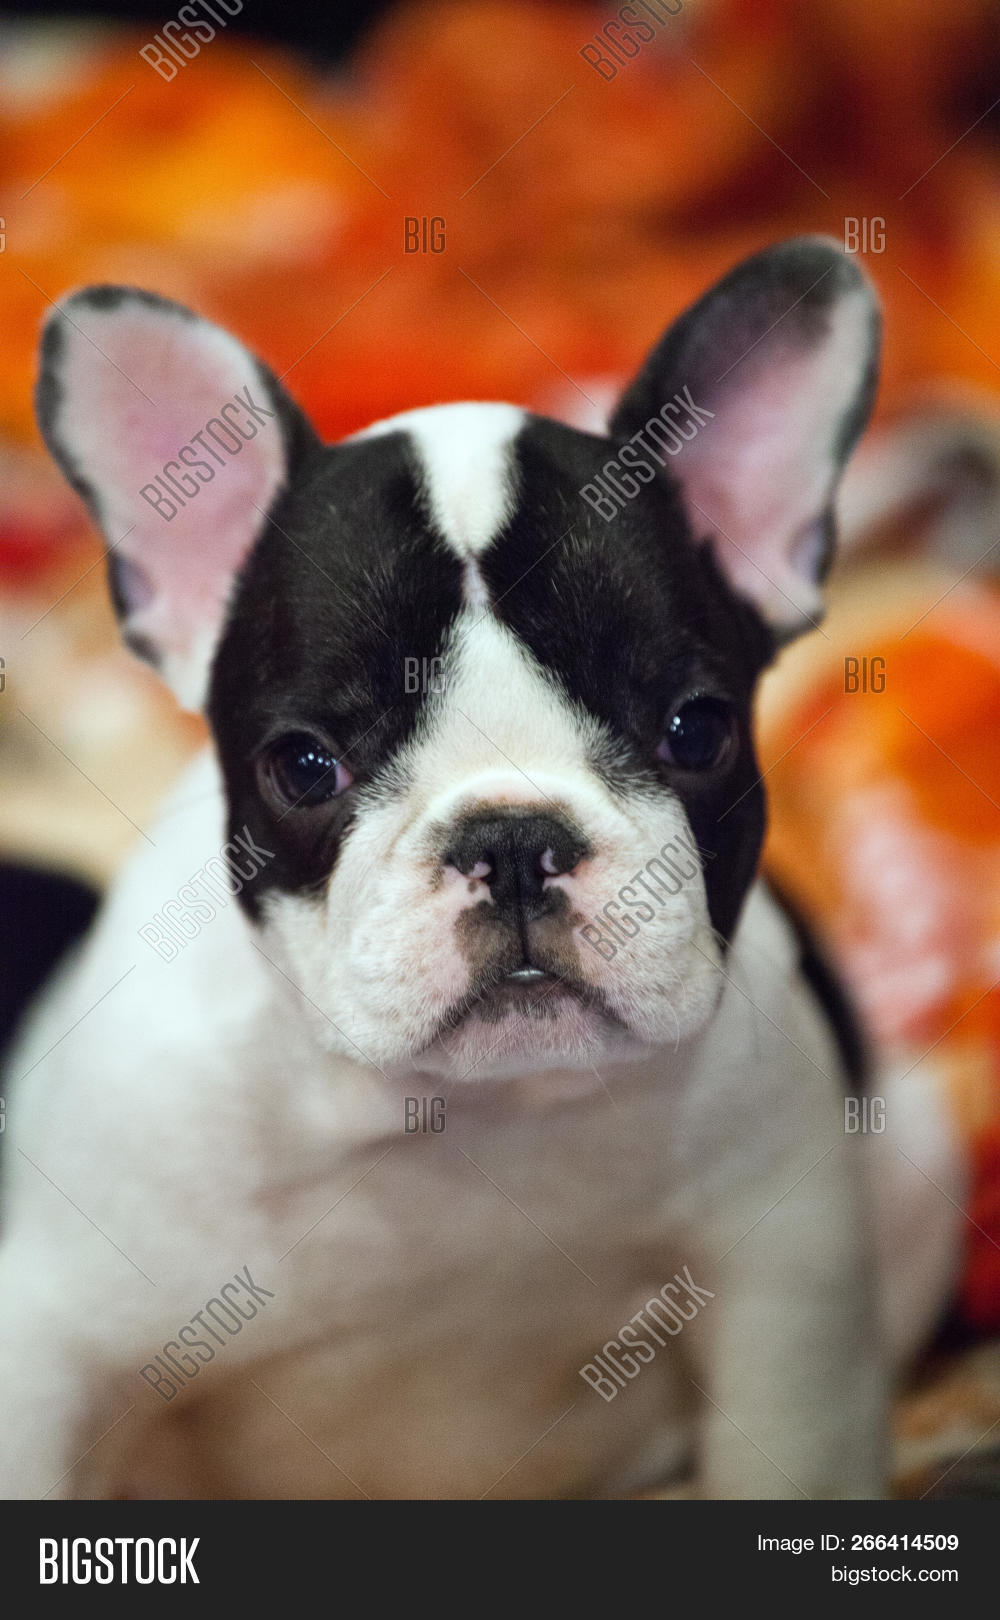 Funny French Bulldog Image Photo Free Trial Bigstock